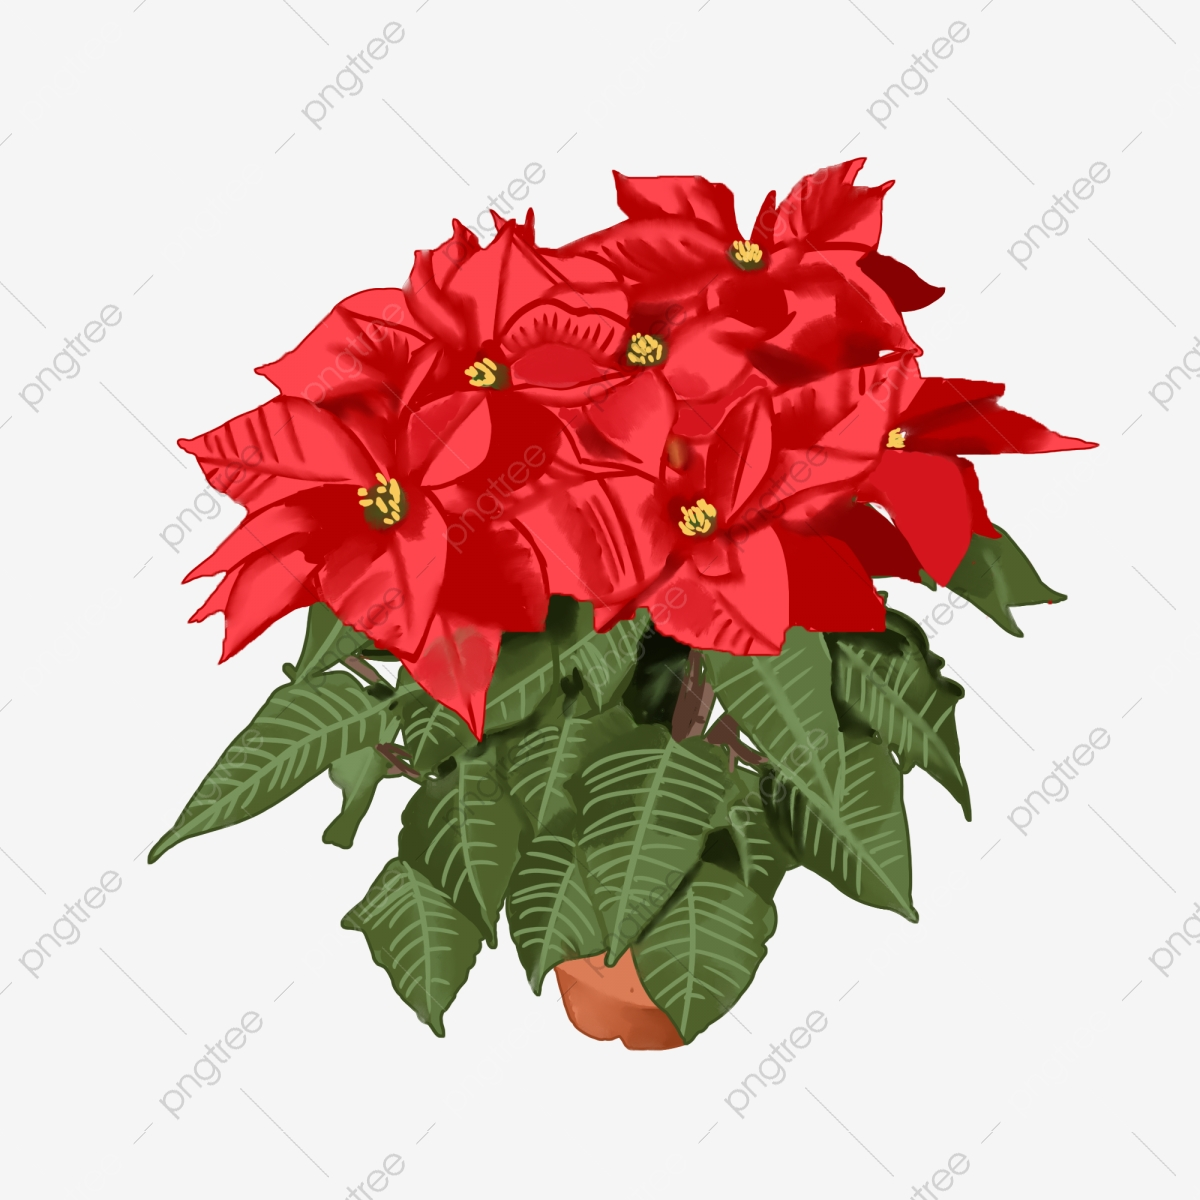 Christmas Poinsettia Clipart png download - 6414*5697 - Free Transparent  Poinsettia png Download. - CleanPNG / KissPNG